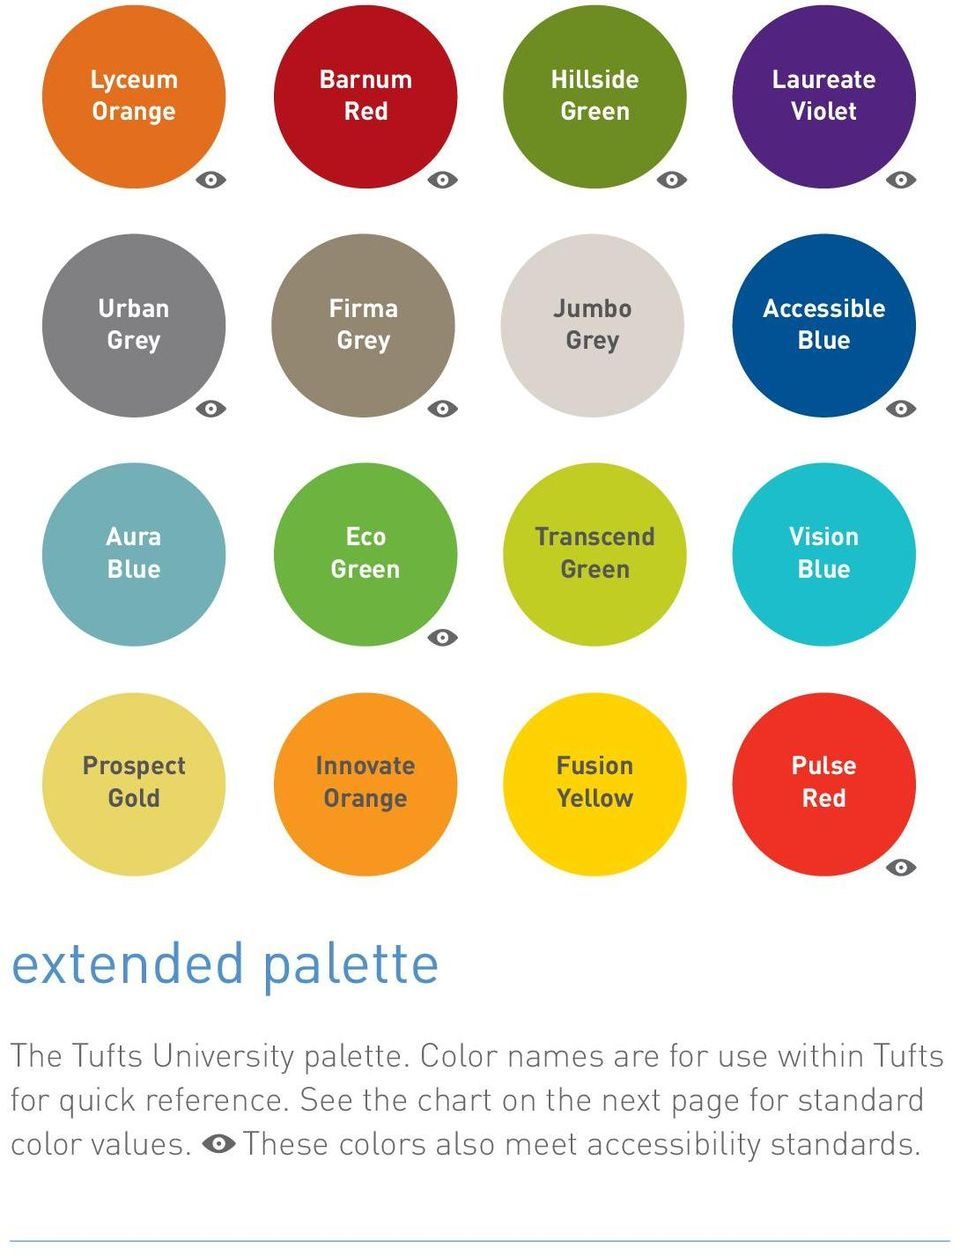 extended palette The Tufts University palette. Color names are for use within Tufts for quick reference.